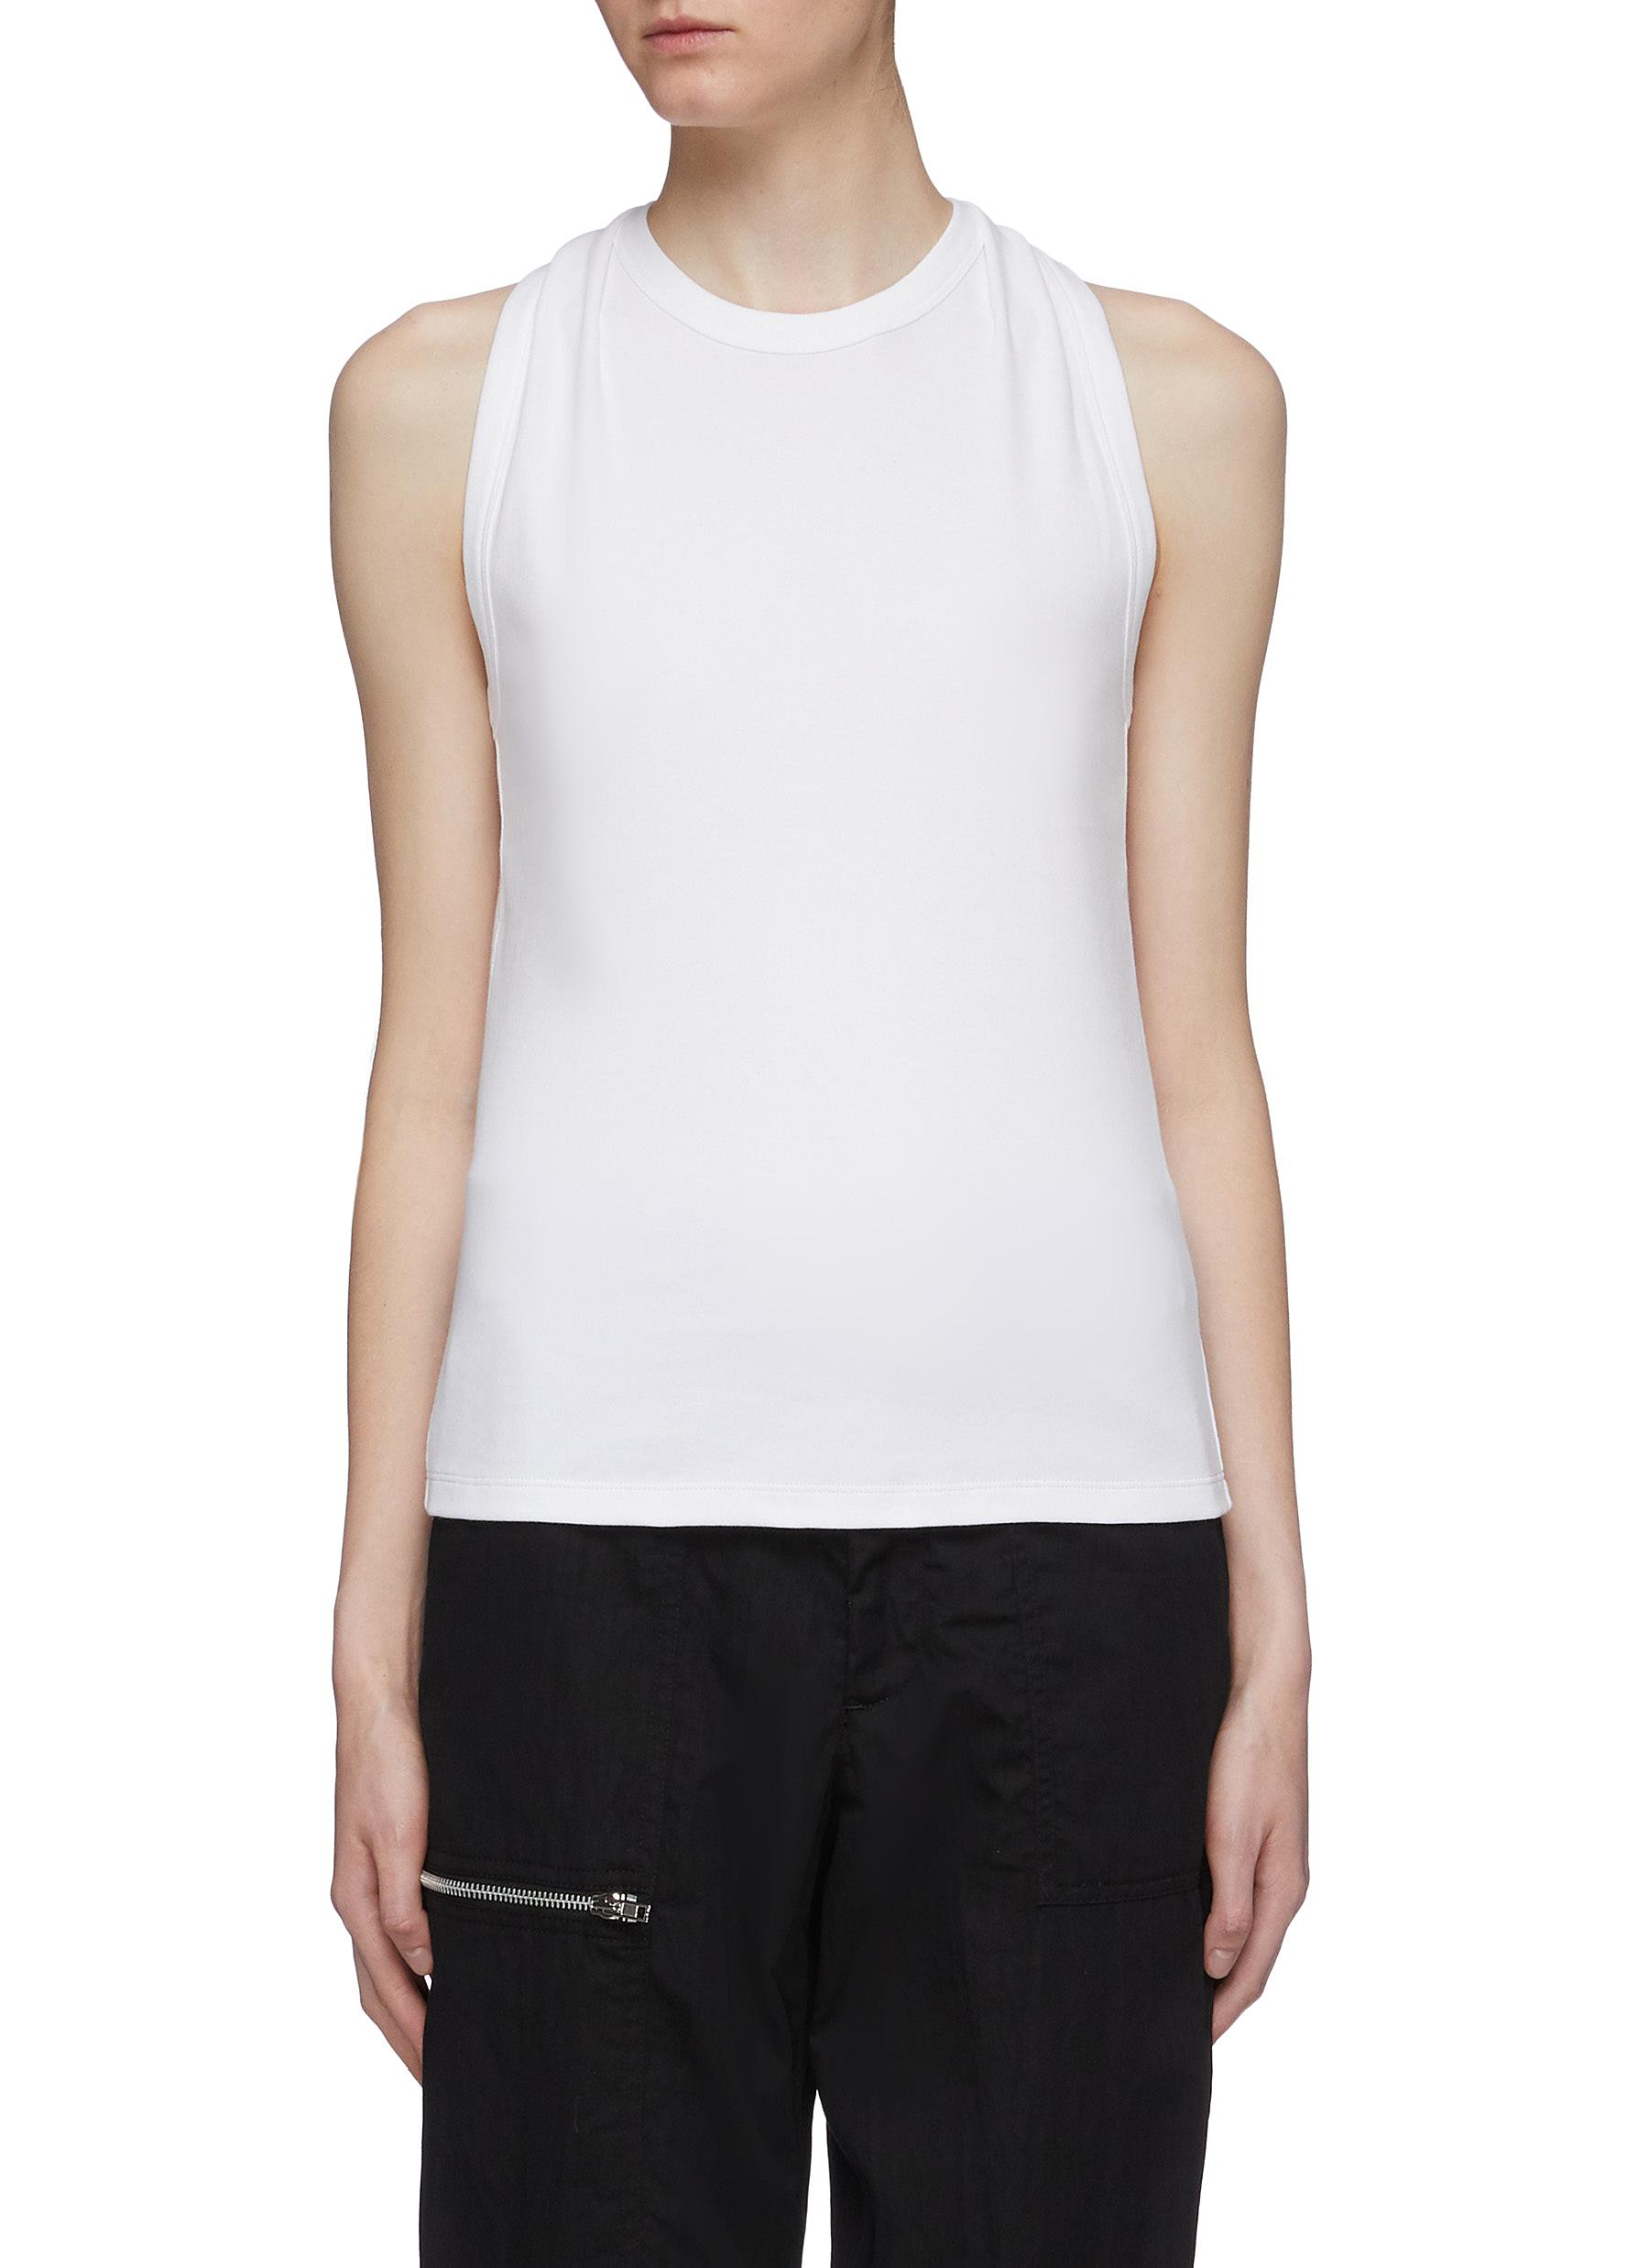 Twist racerback tank top by Helmut Lang